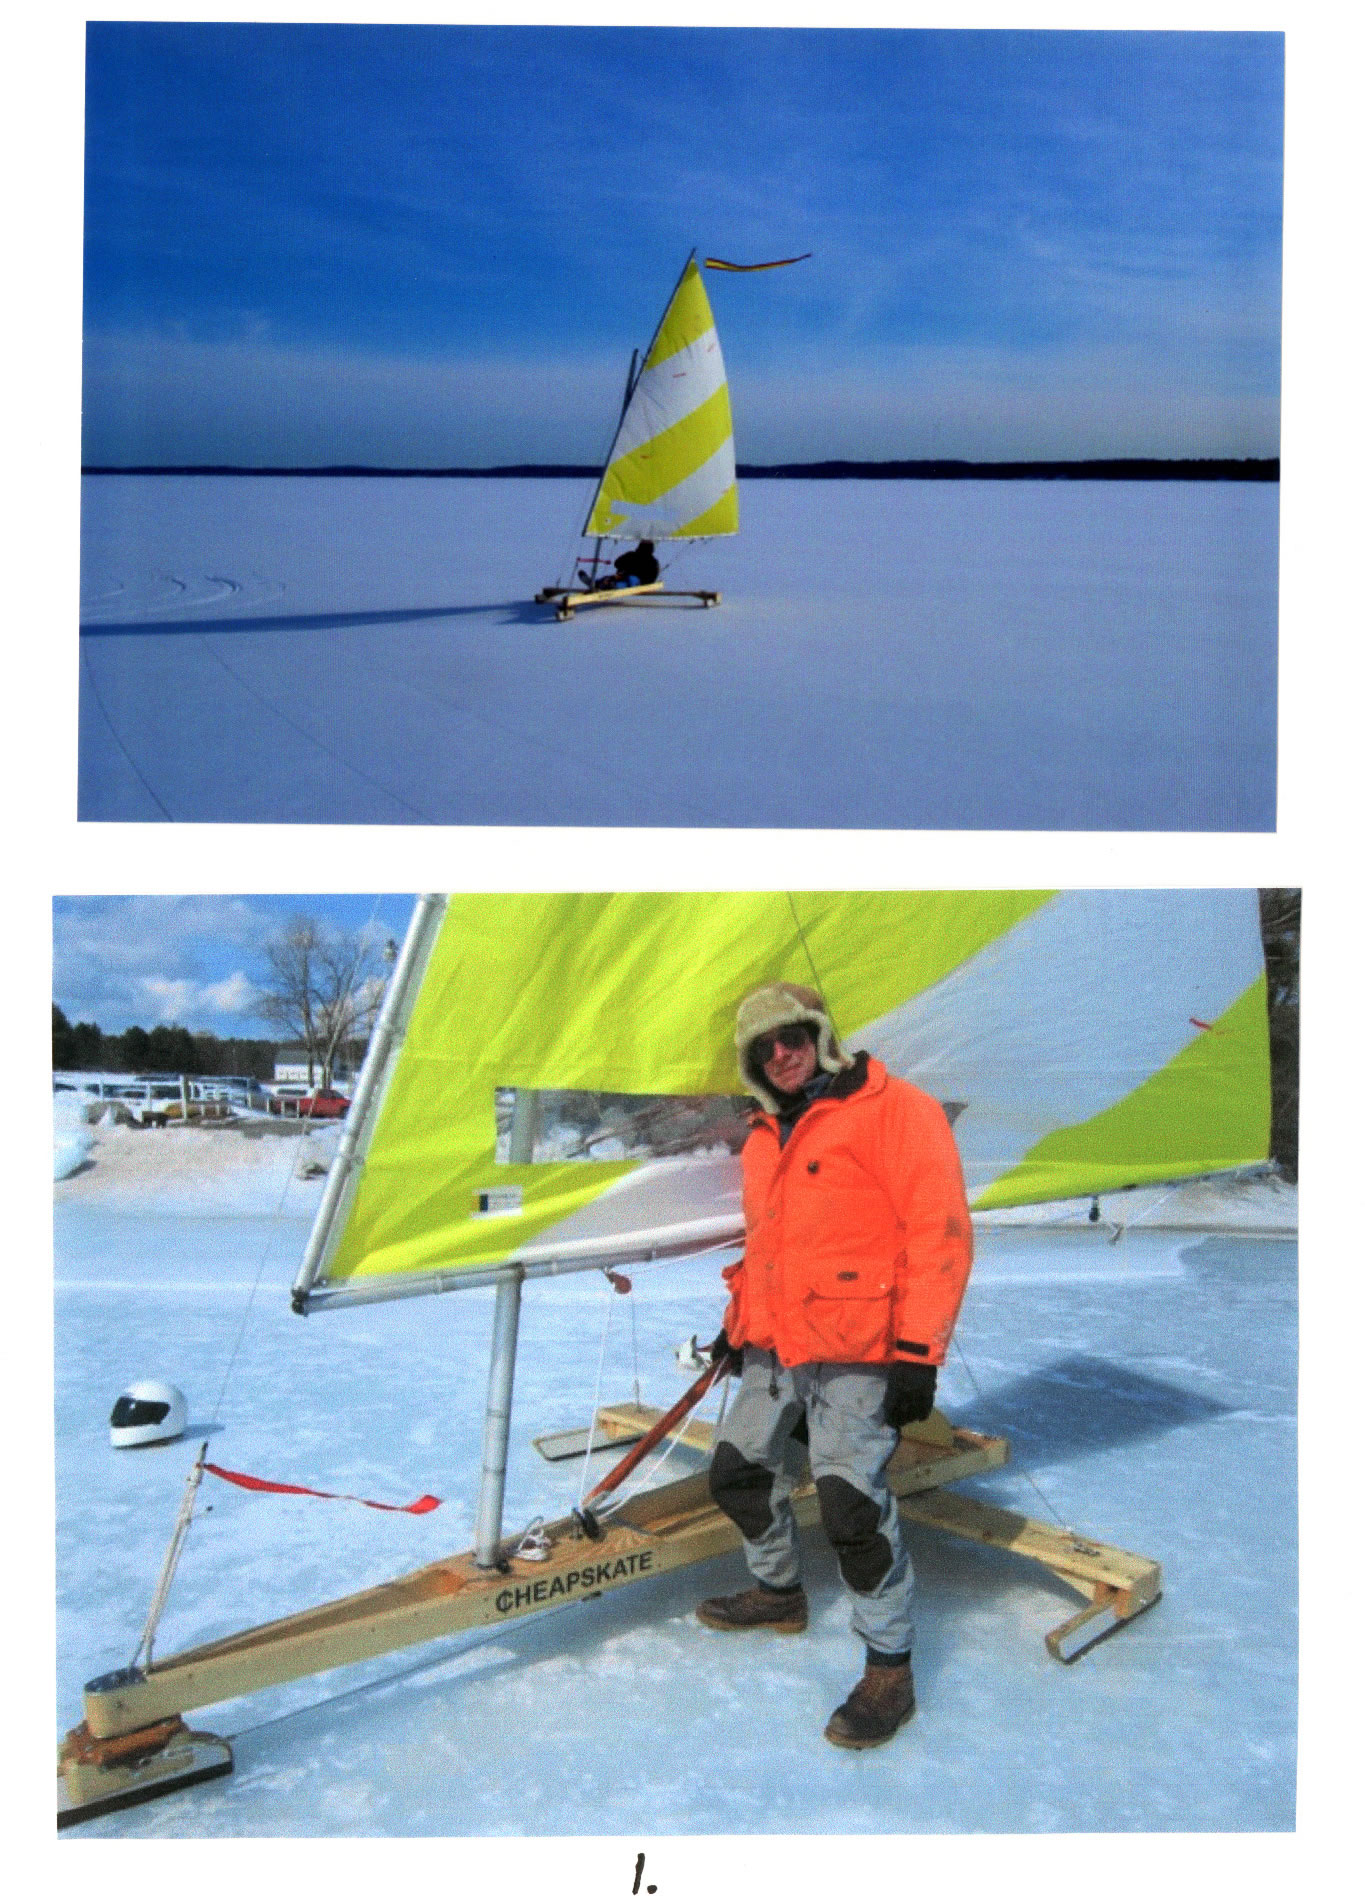 Cheapskate Iceboat – The Manual Chickawaukie Ice Boat Club